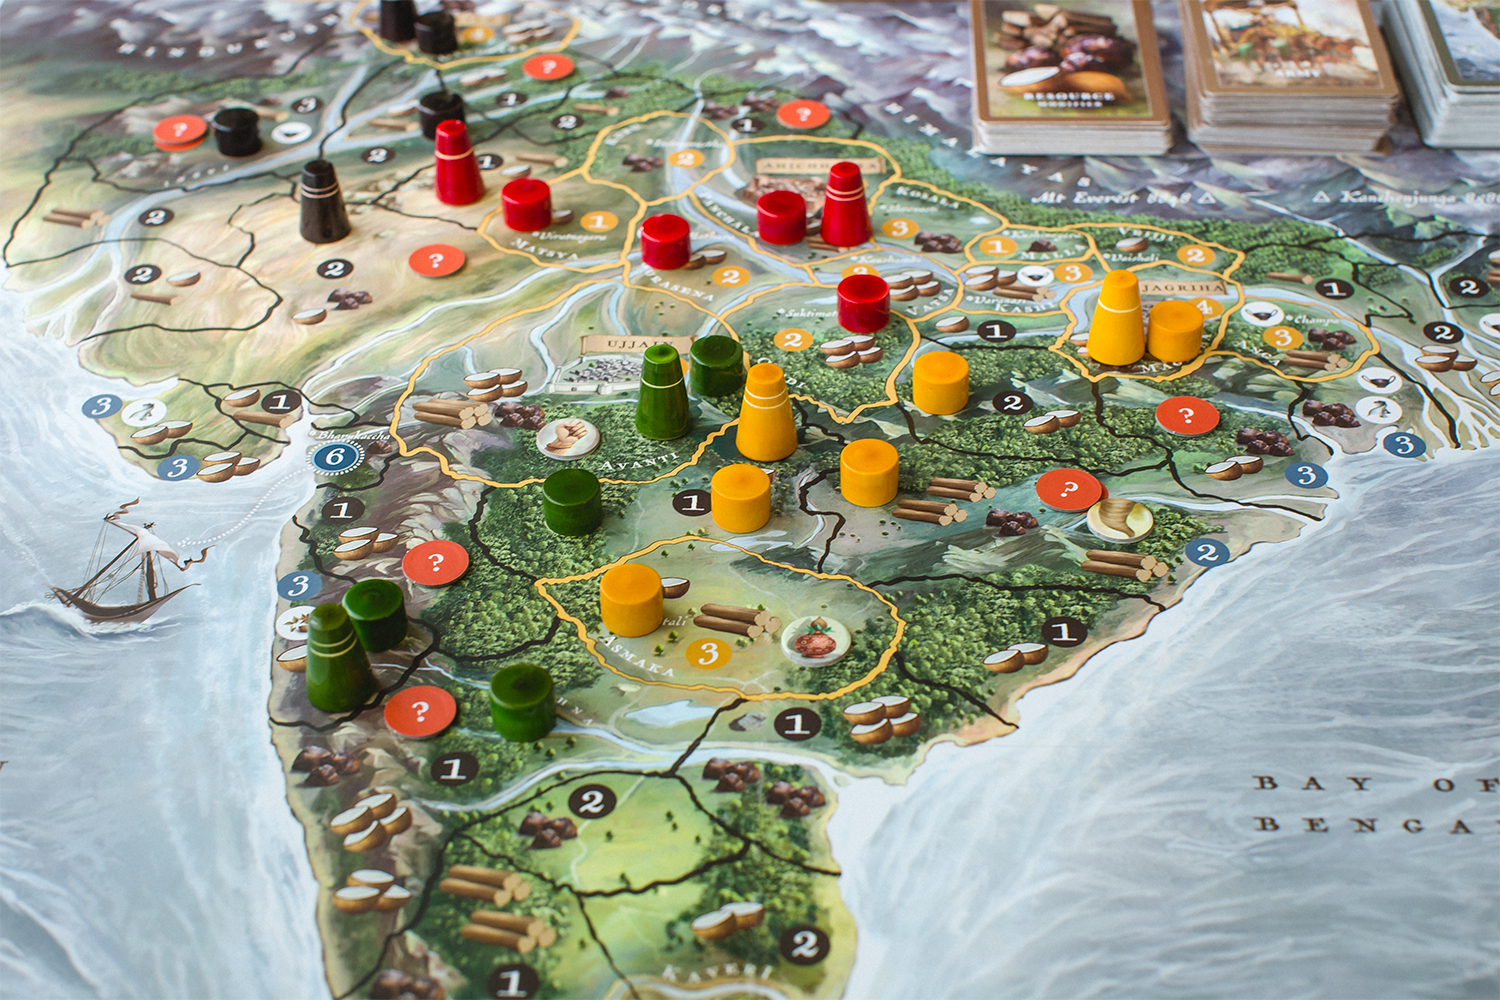 4_Bharata-600-BC-game-board-pawns-and-tokens.jpg